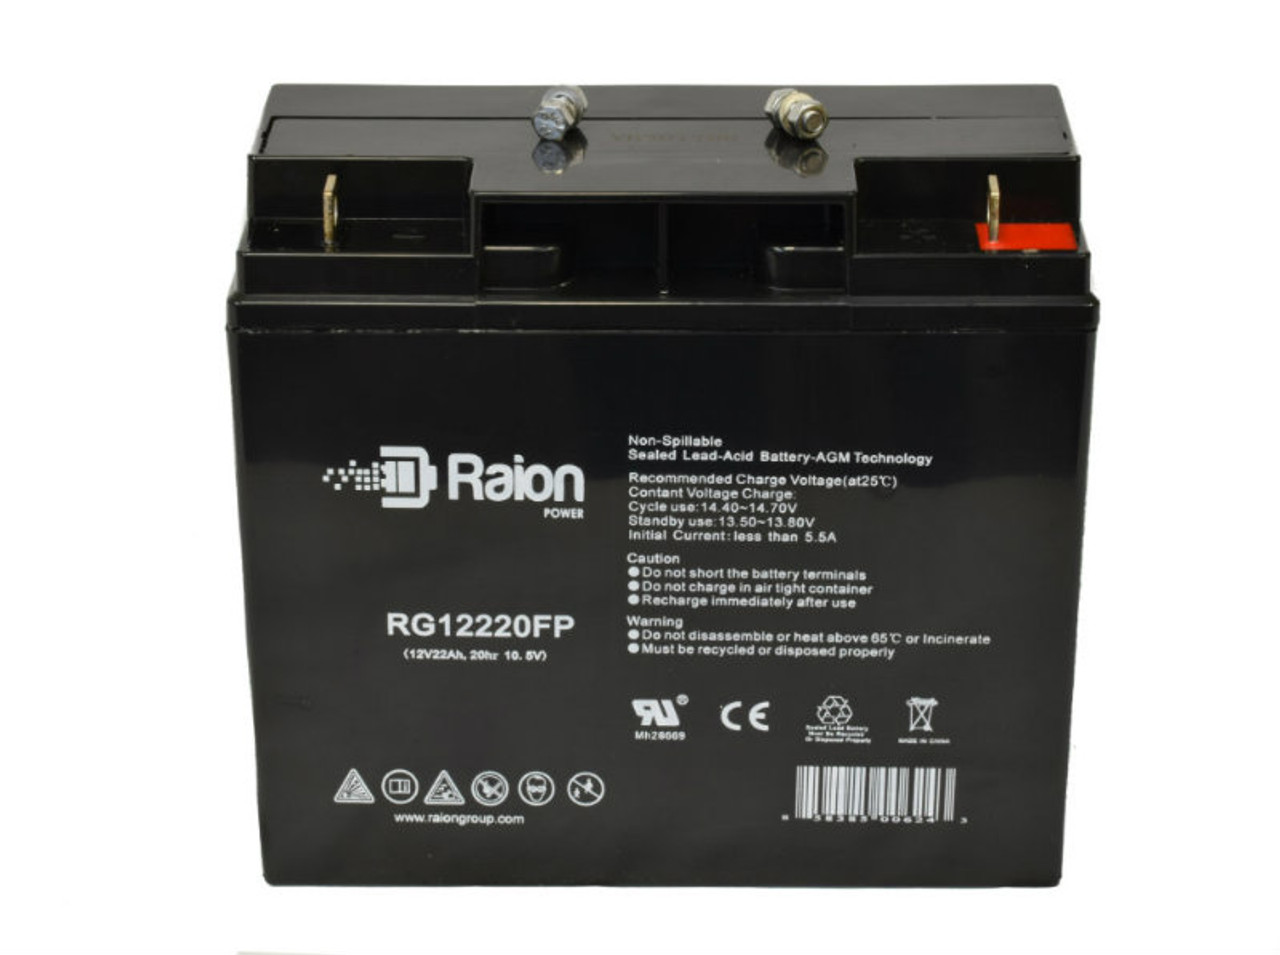 RG12220FP Sealed Lead Acid Battery Pack For Amigo RT Express Jr Mobility Scooter